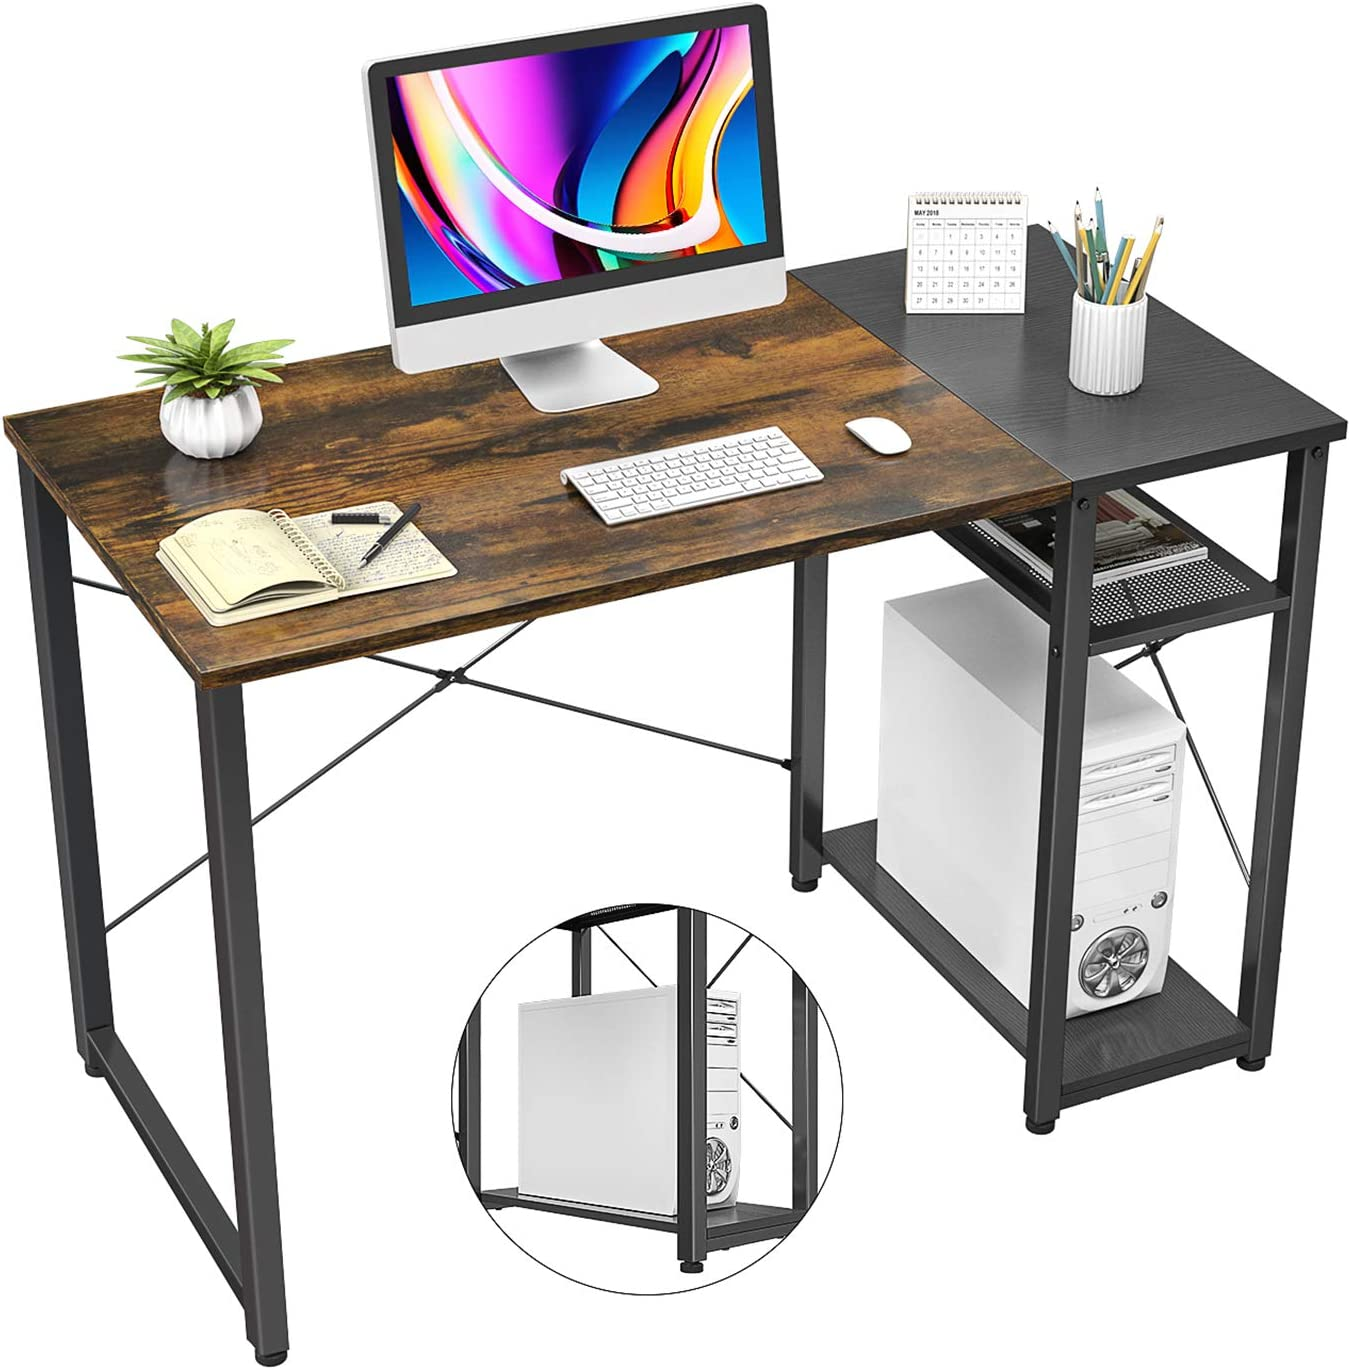 """Homfio Industrial Computer Desk with Shelves, 47"""" Home Office Desk Table with 2 Storage Shelves, Modern Sturdy Study Writing Desk for Bedroom, Rustic Brown and Black"""